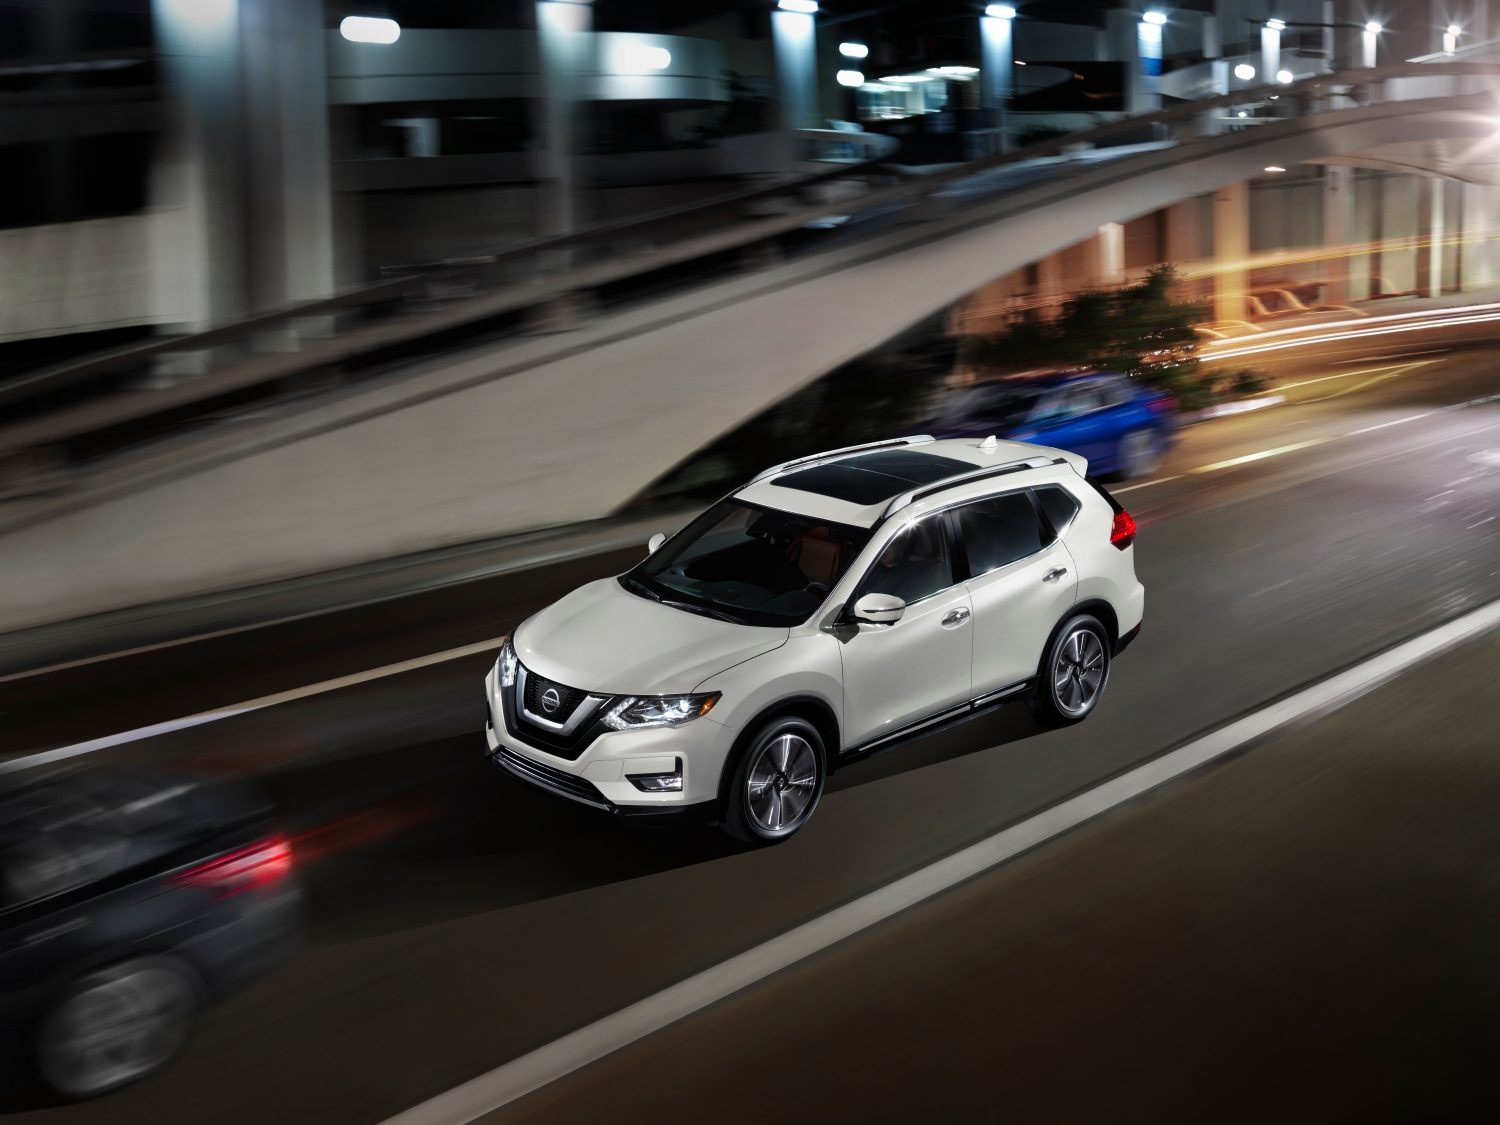 Nissan Rogue Overview video